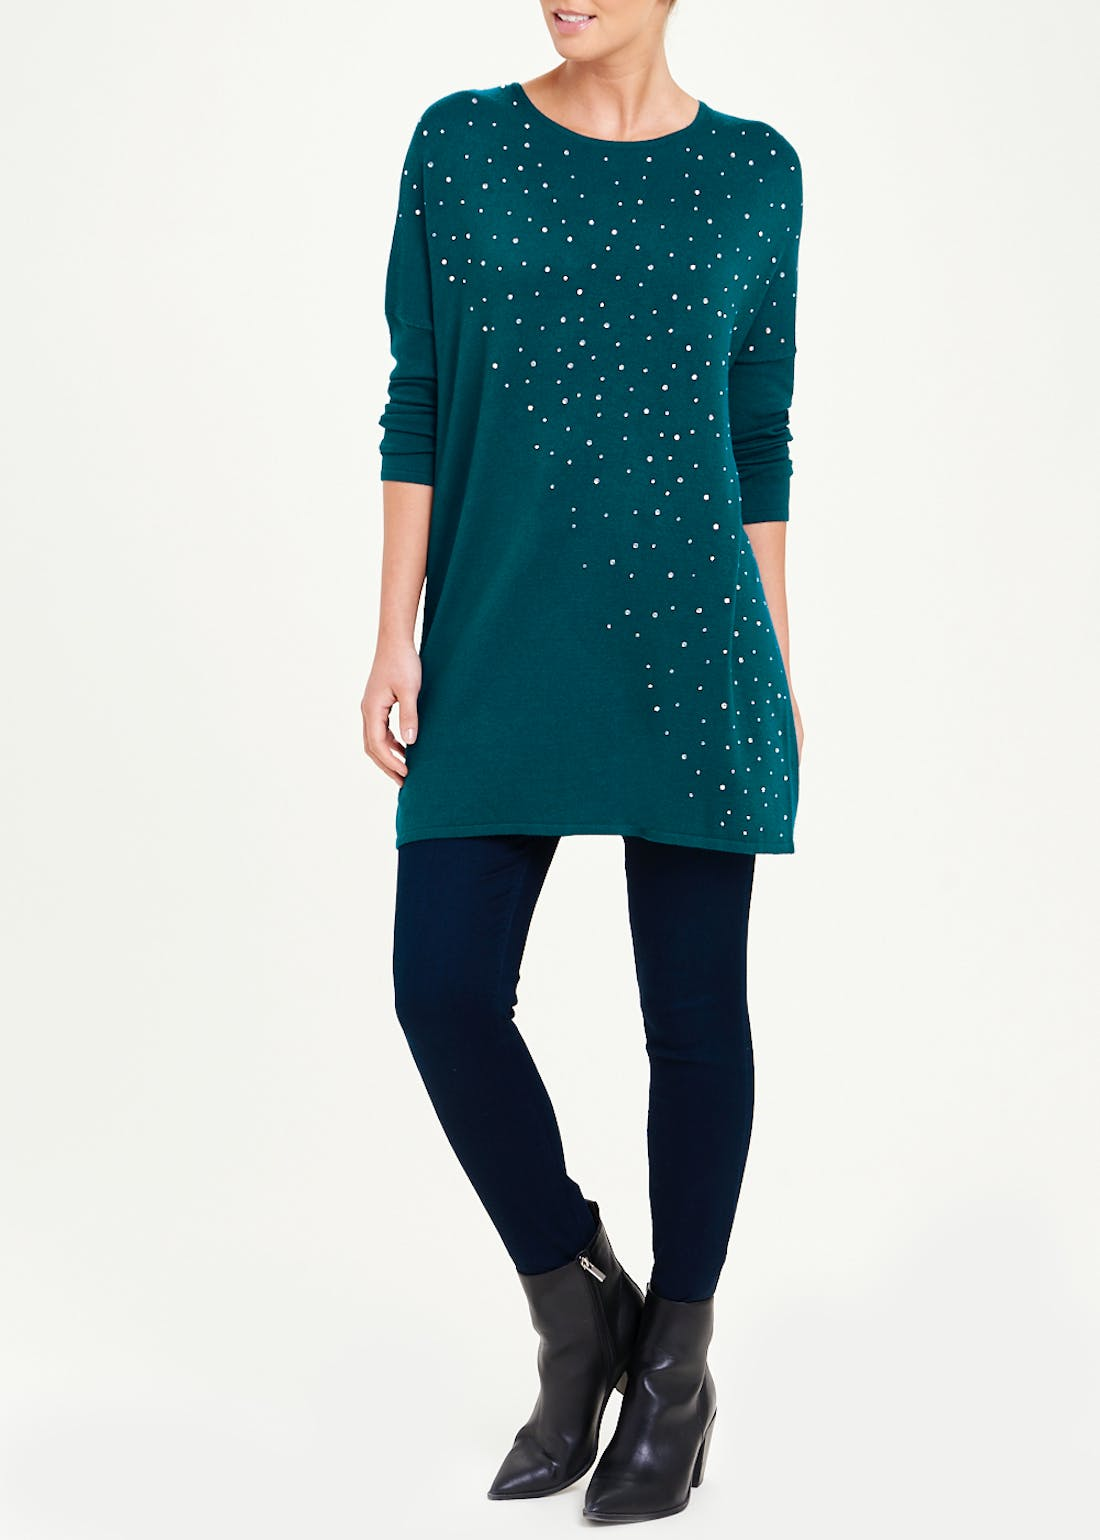 Soon Studded Tunic Top